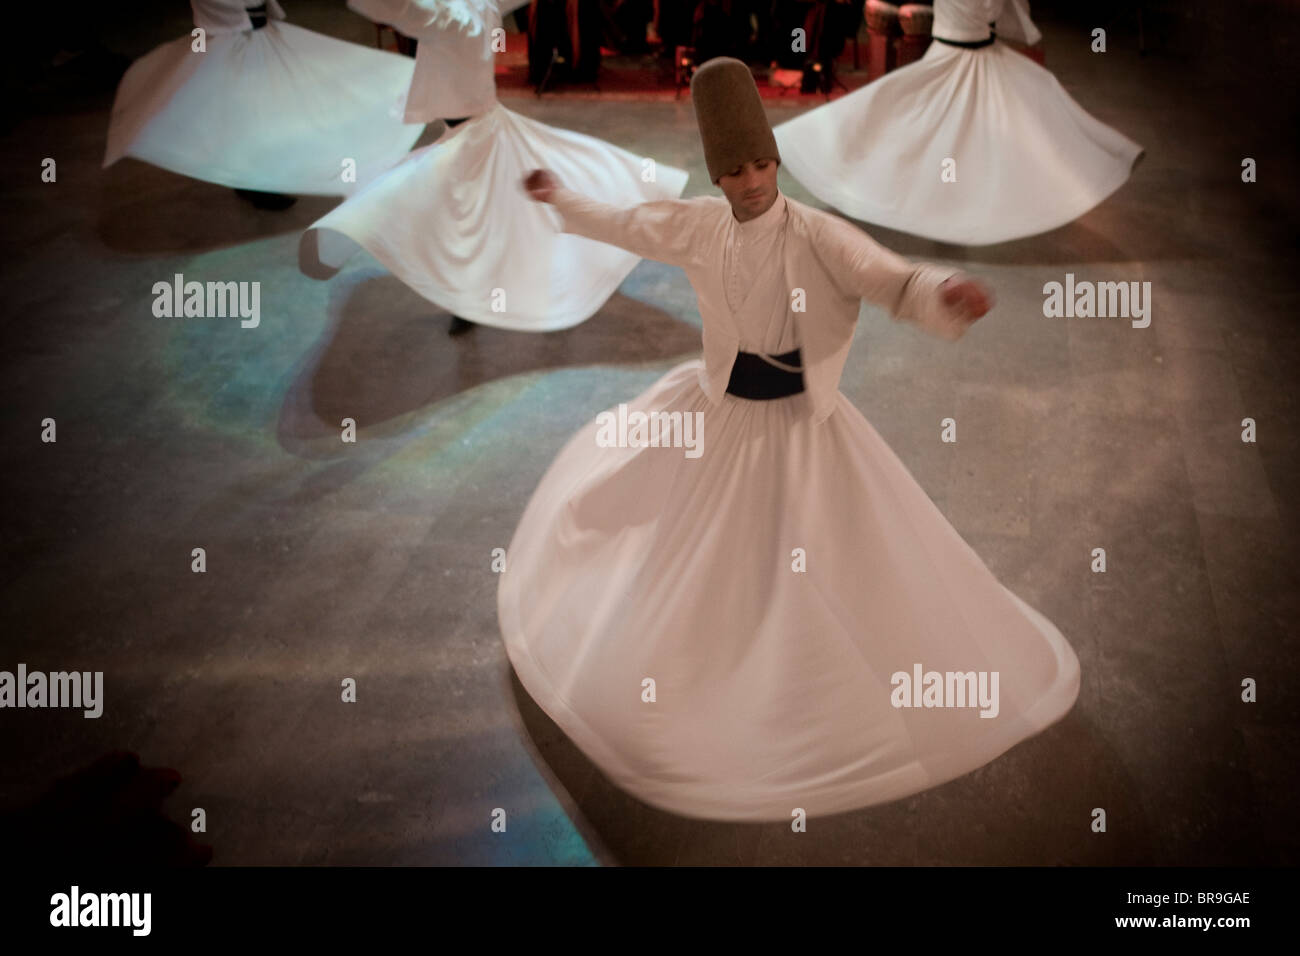 Whirling Dervishes perform traditional dance Istanbul Turkey. - Stock Image